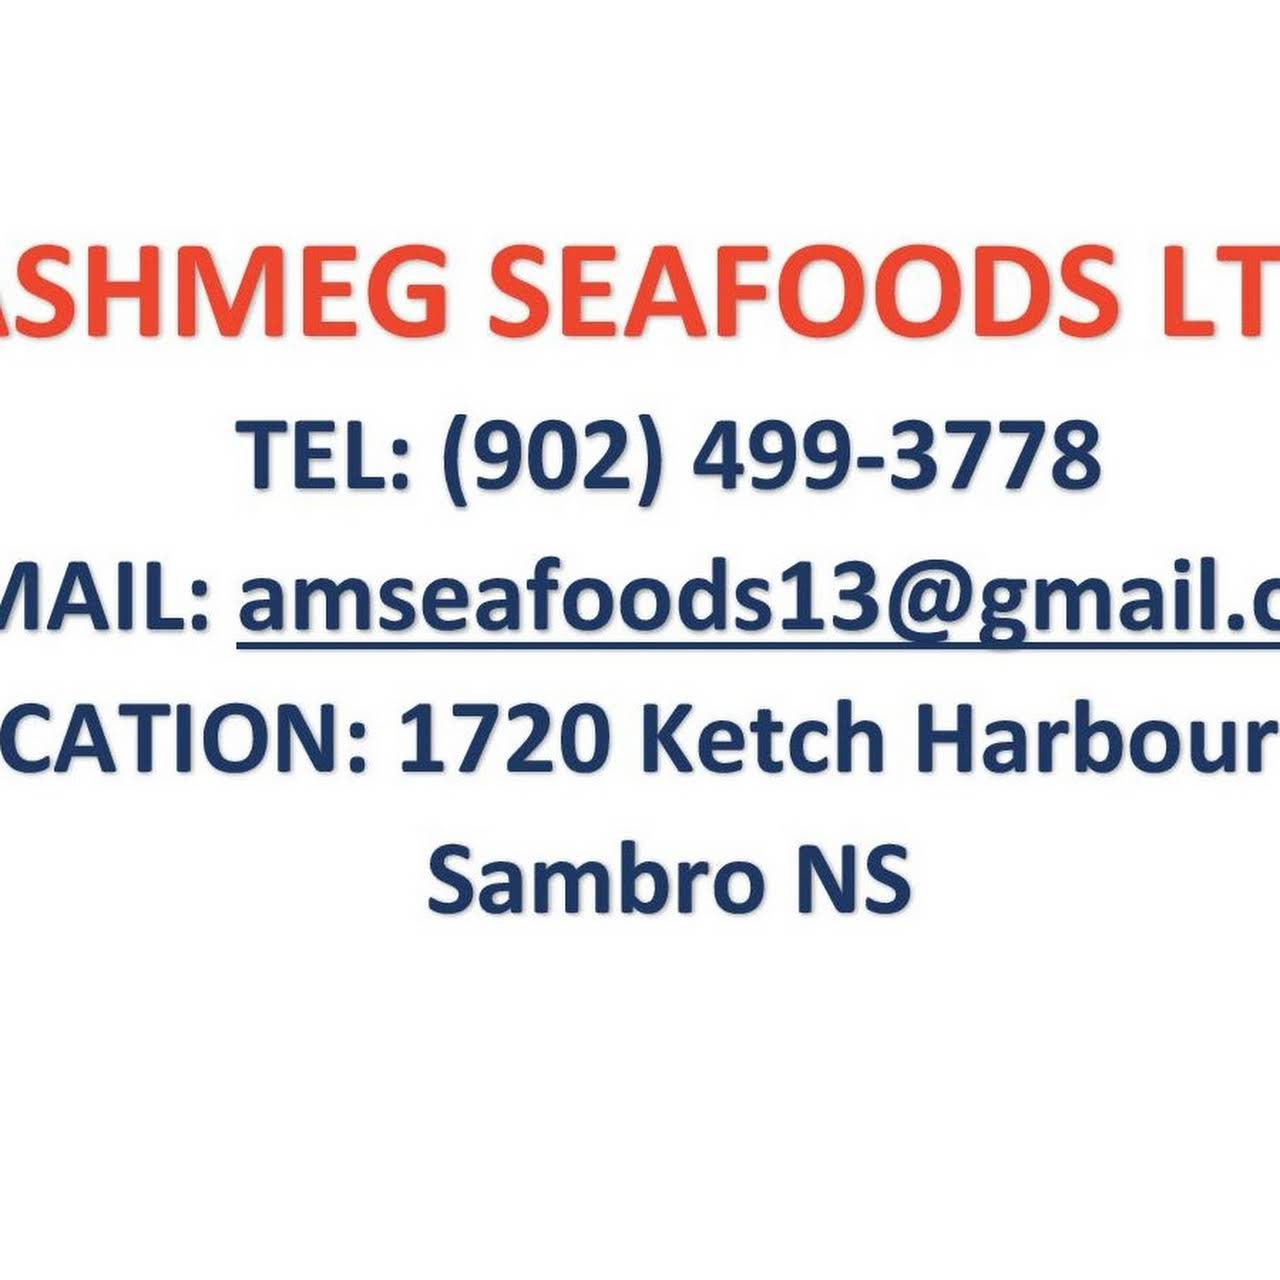 AshMeg Seafoods Ltd  - FAMILY OWNED LOCAL BUSINESS